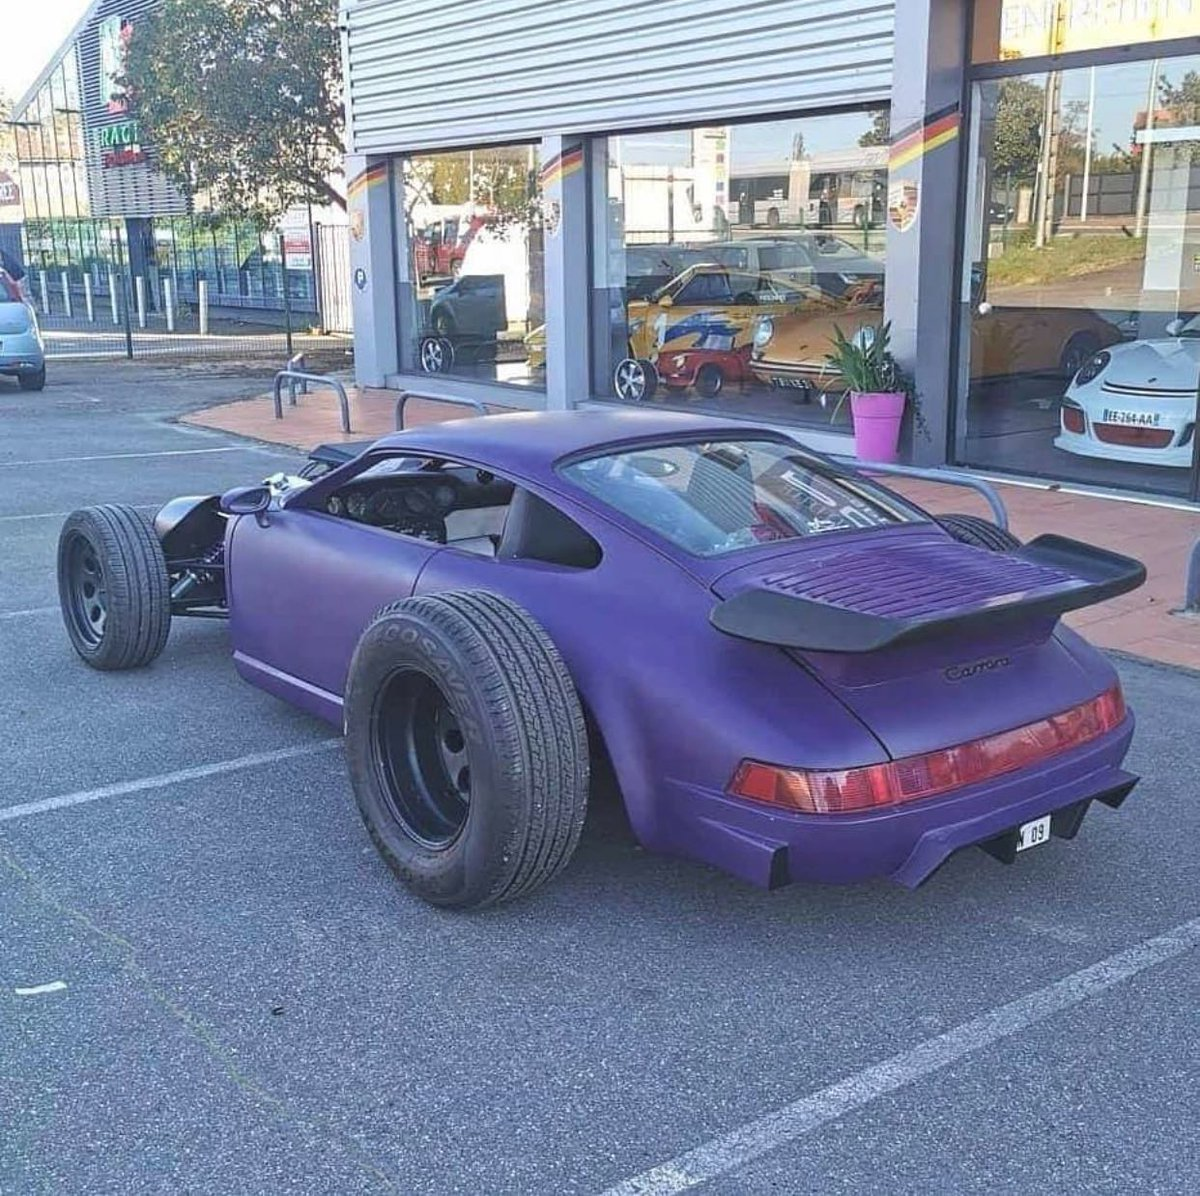 Respot from @xkillegal An interesting concept but, we think this has gone too far. What do you guys think? #dogscutetho  #porsche #ratrod #911 #bulldog #cute #whatiscar #crazy #hotrod #oloi #oloiinc